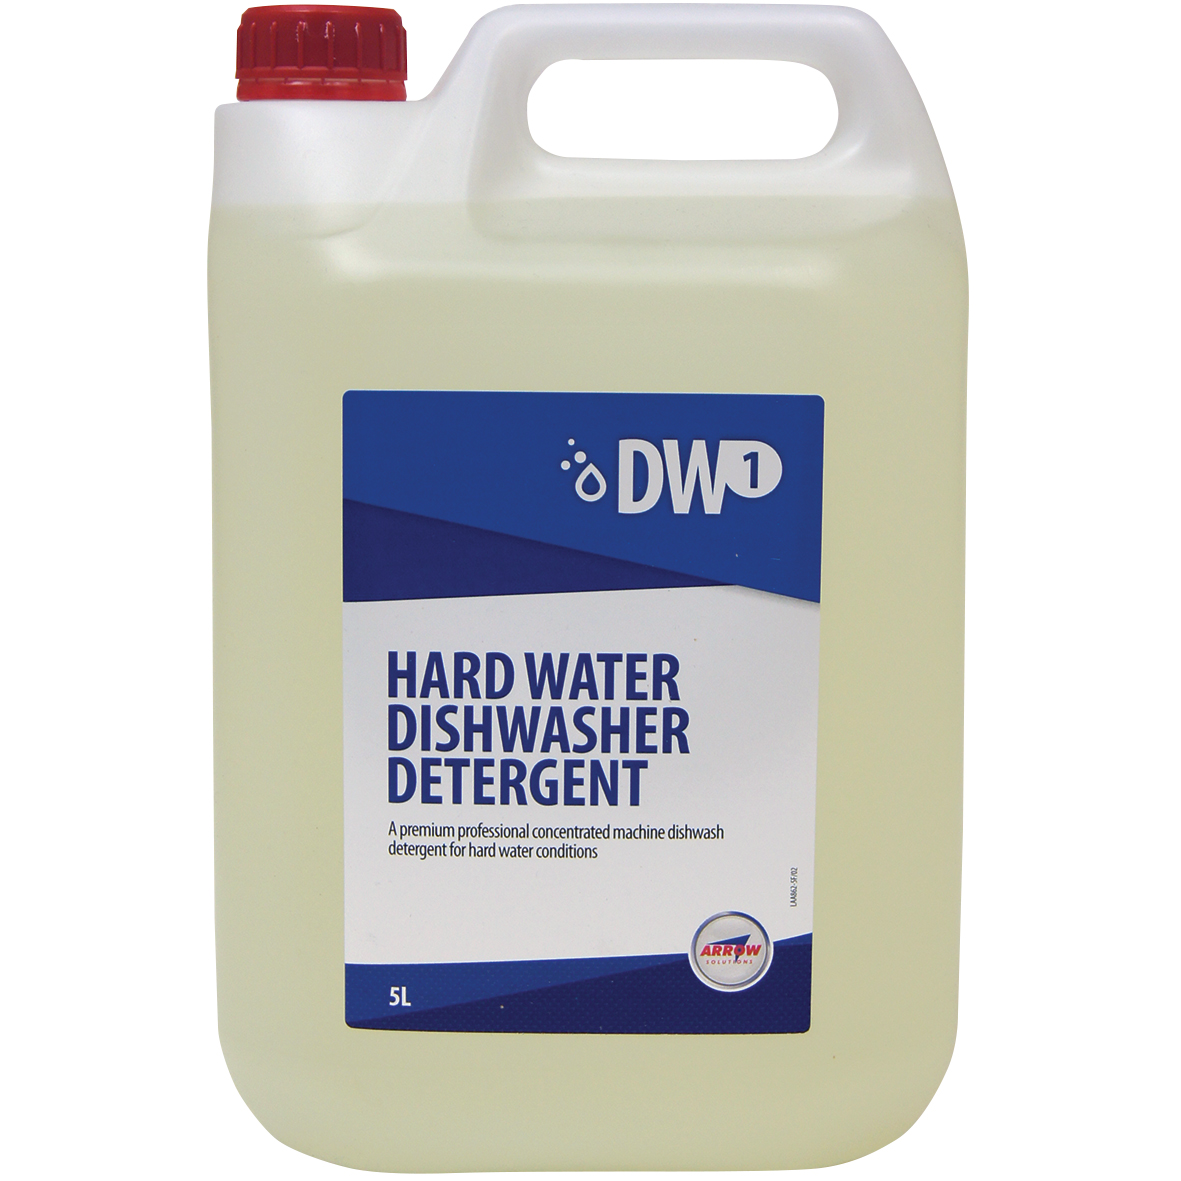 DW1 Hard Water Dishwasher Detergent product image